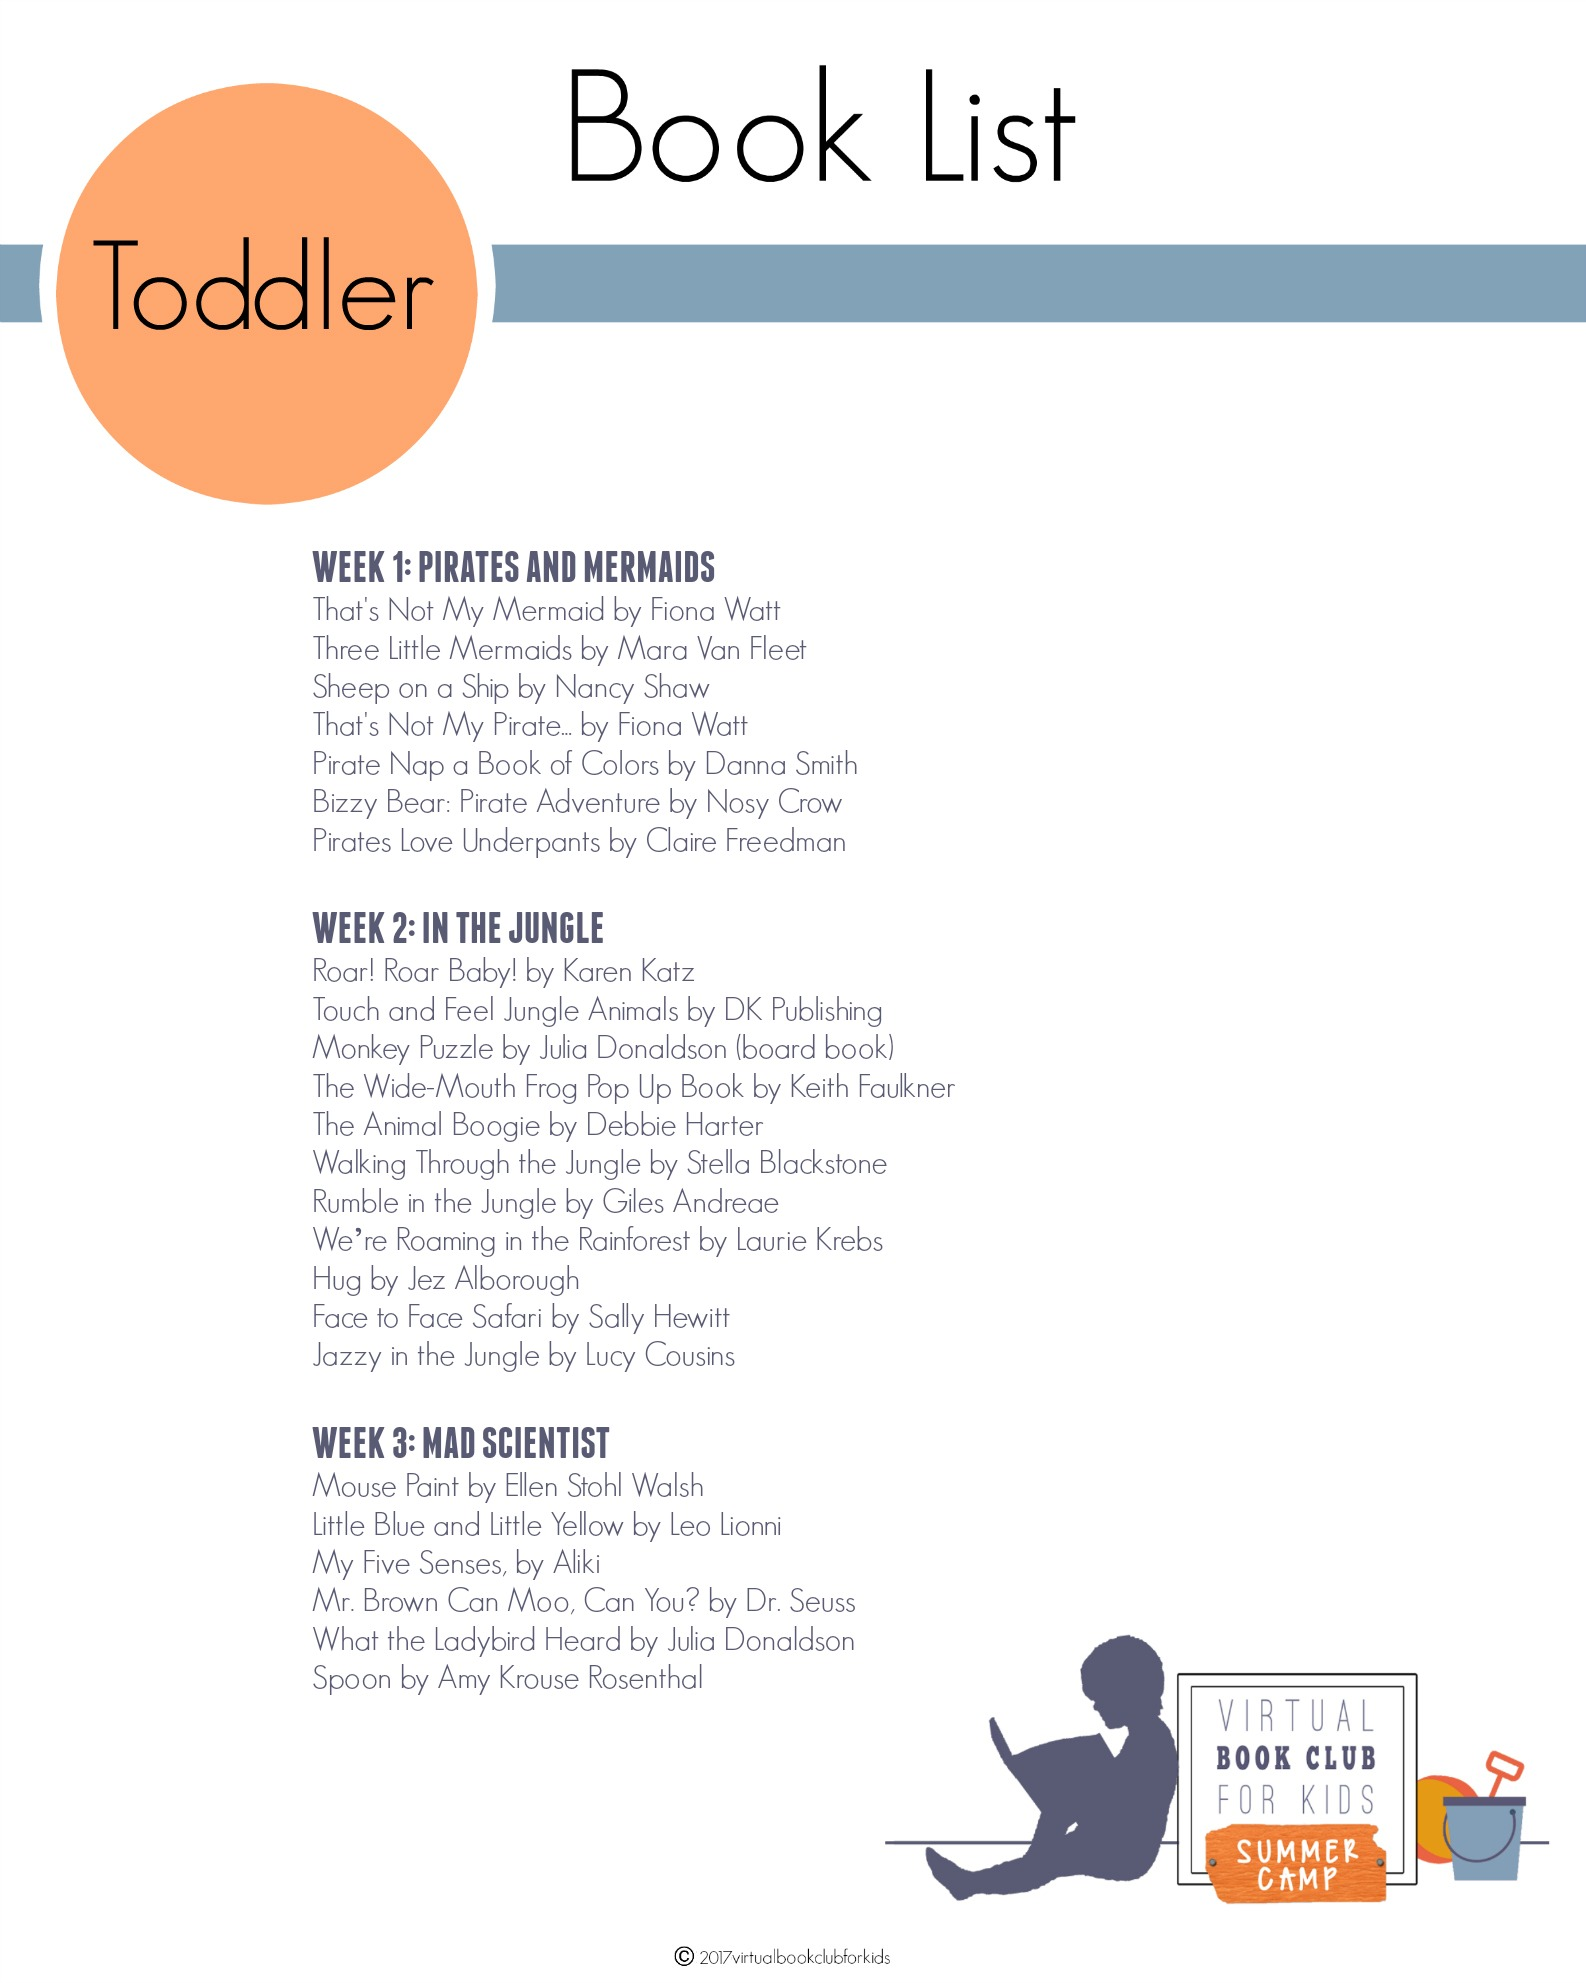 Toddler Book List for Virtual Book Club for Kids Summer Camp